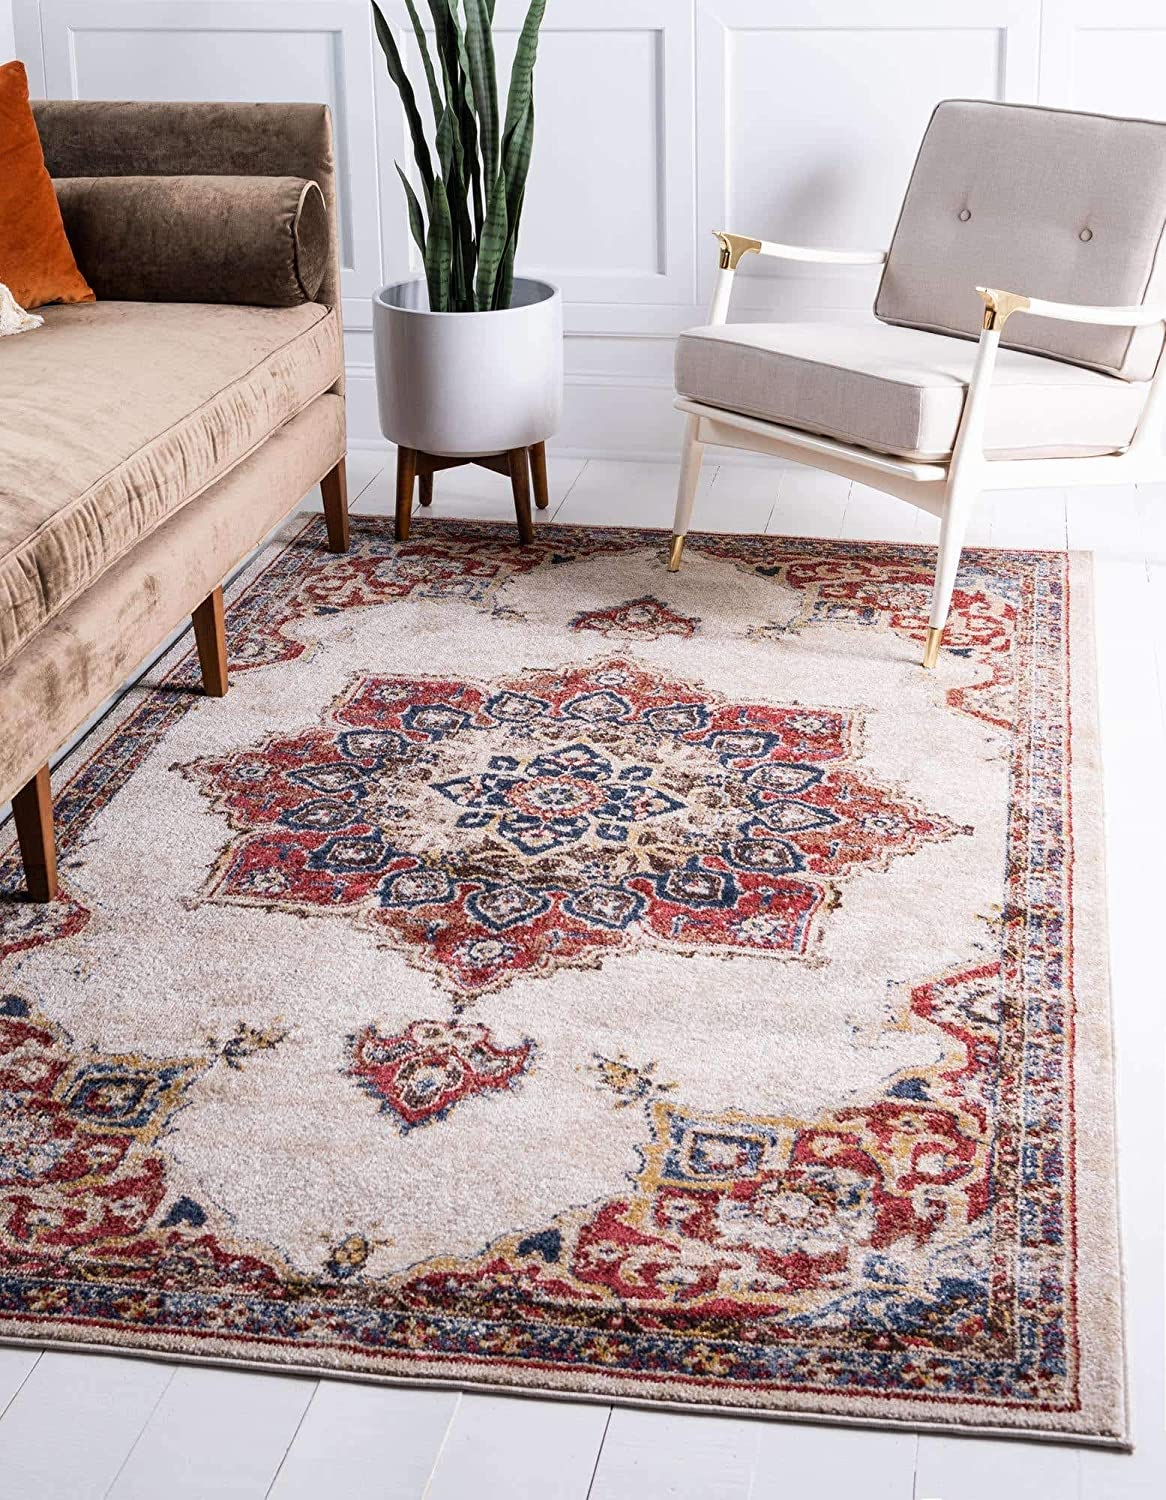 Unique Loom Utopia Collection Traditional Medallion Vintage Warm Tones Cream Area Rug (8' 0 x 10' 0)